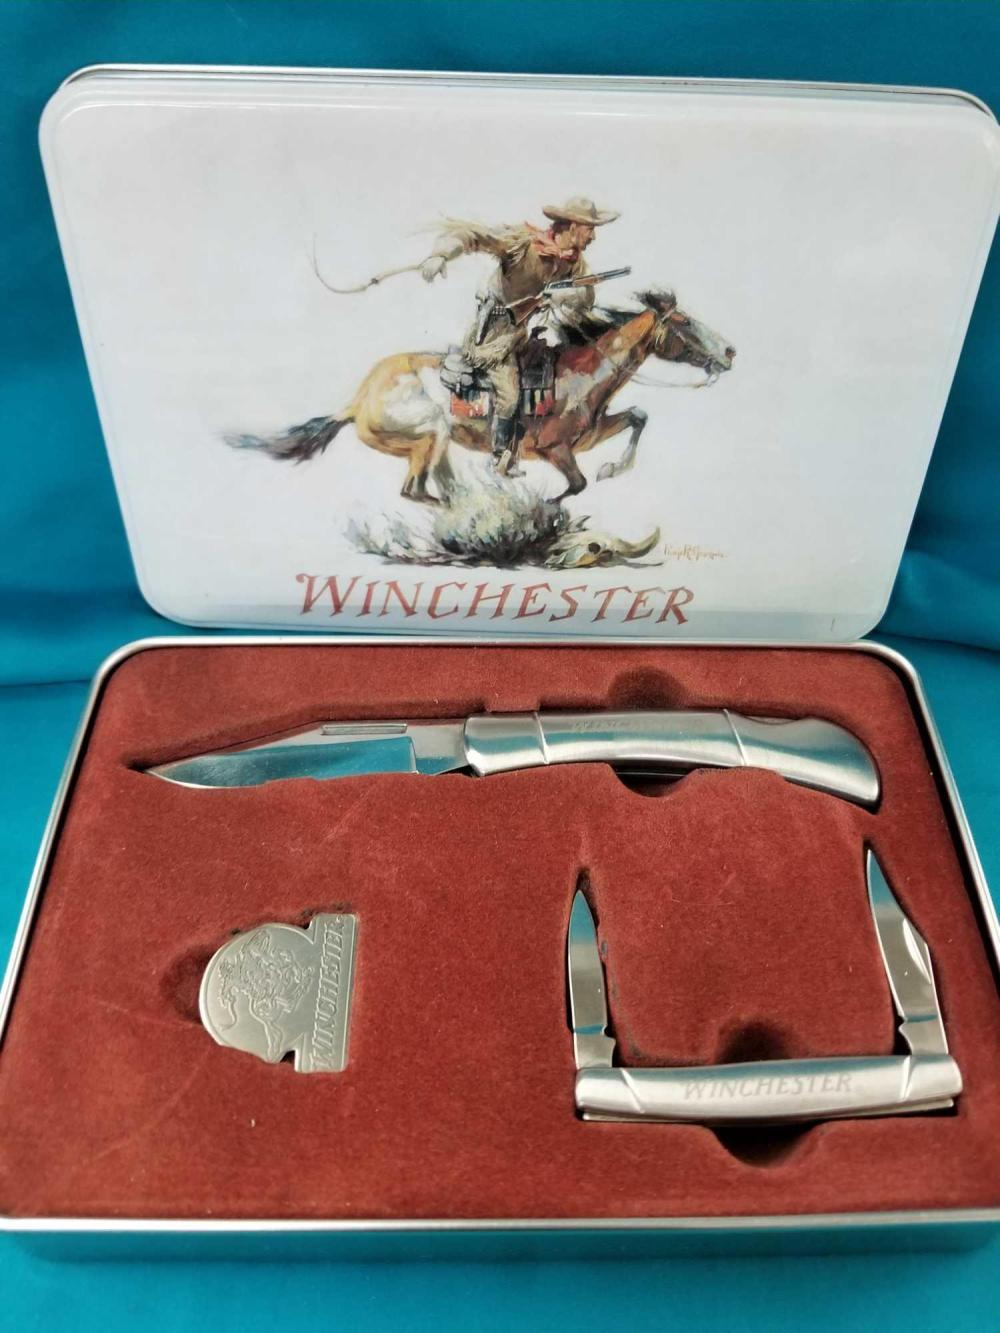 WINCHESTER 2 KNIFE SET IN COLLECTOR TIN